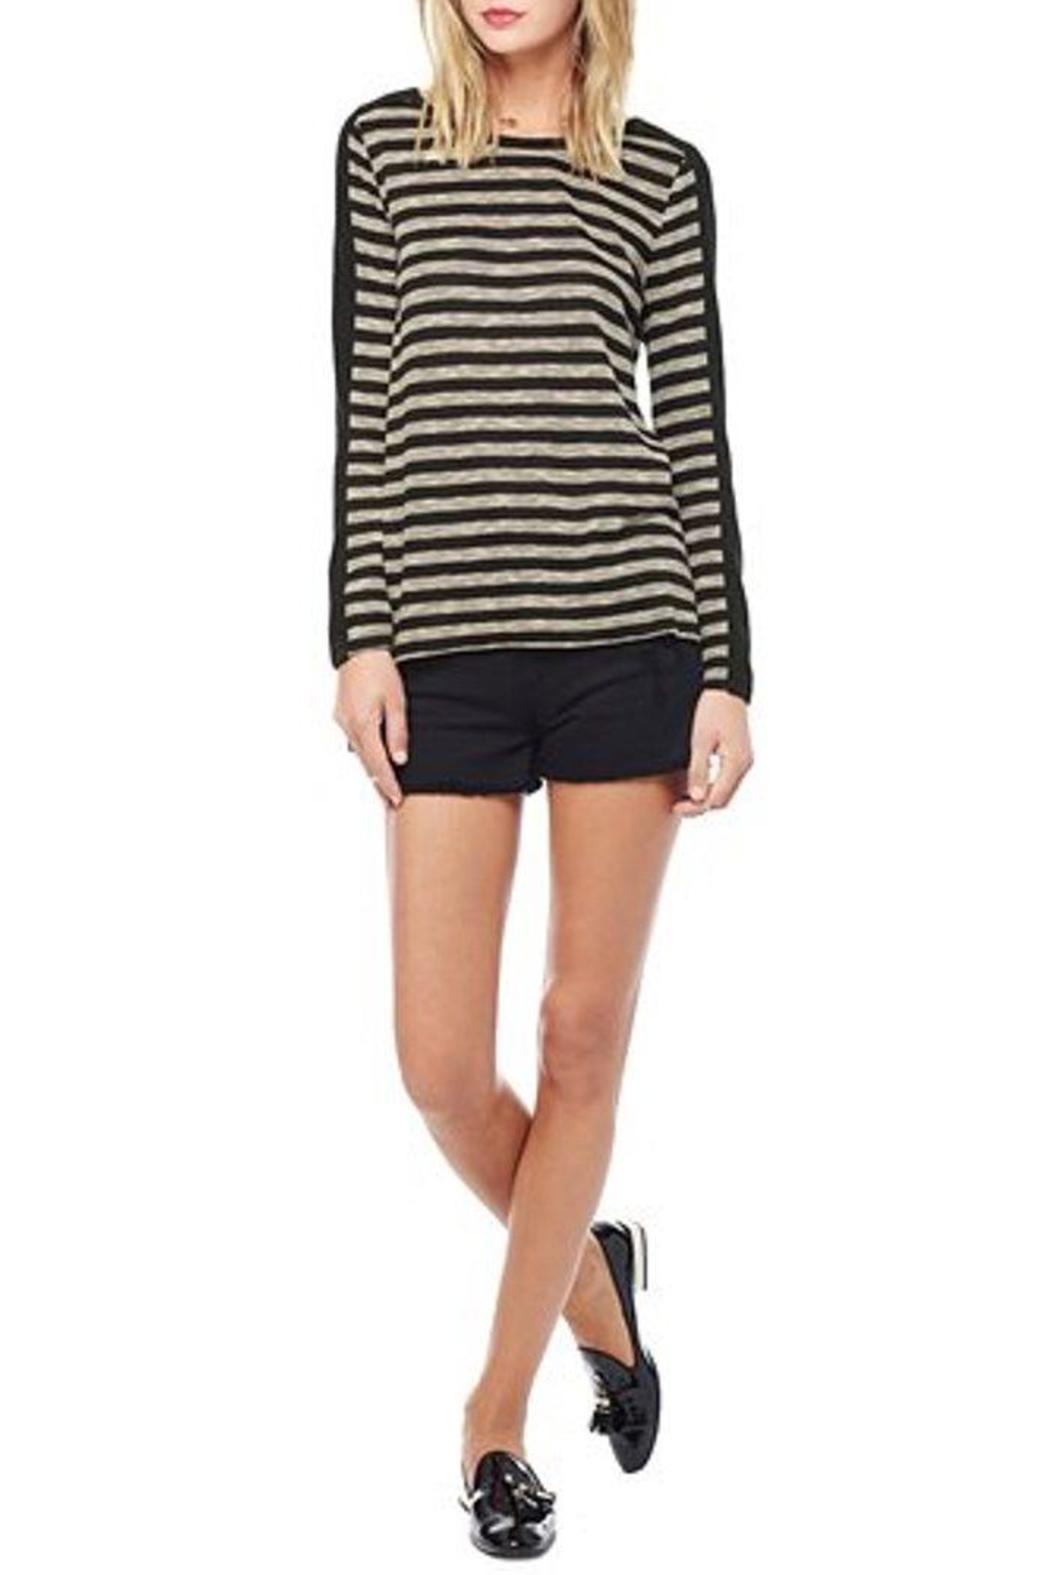 Jack by BB Dakota Fitz Striped Top - Front Full Image